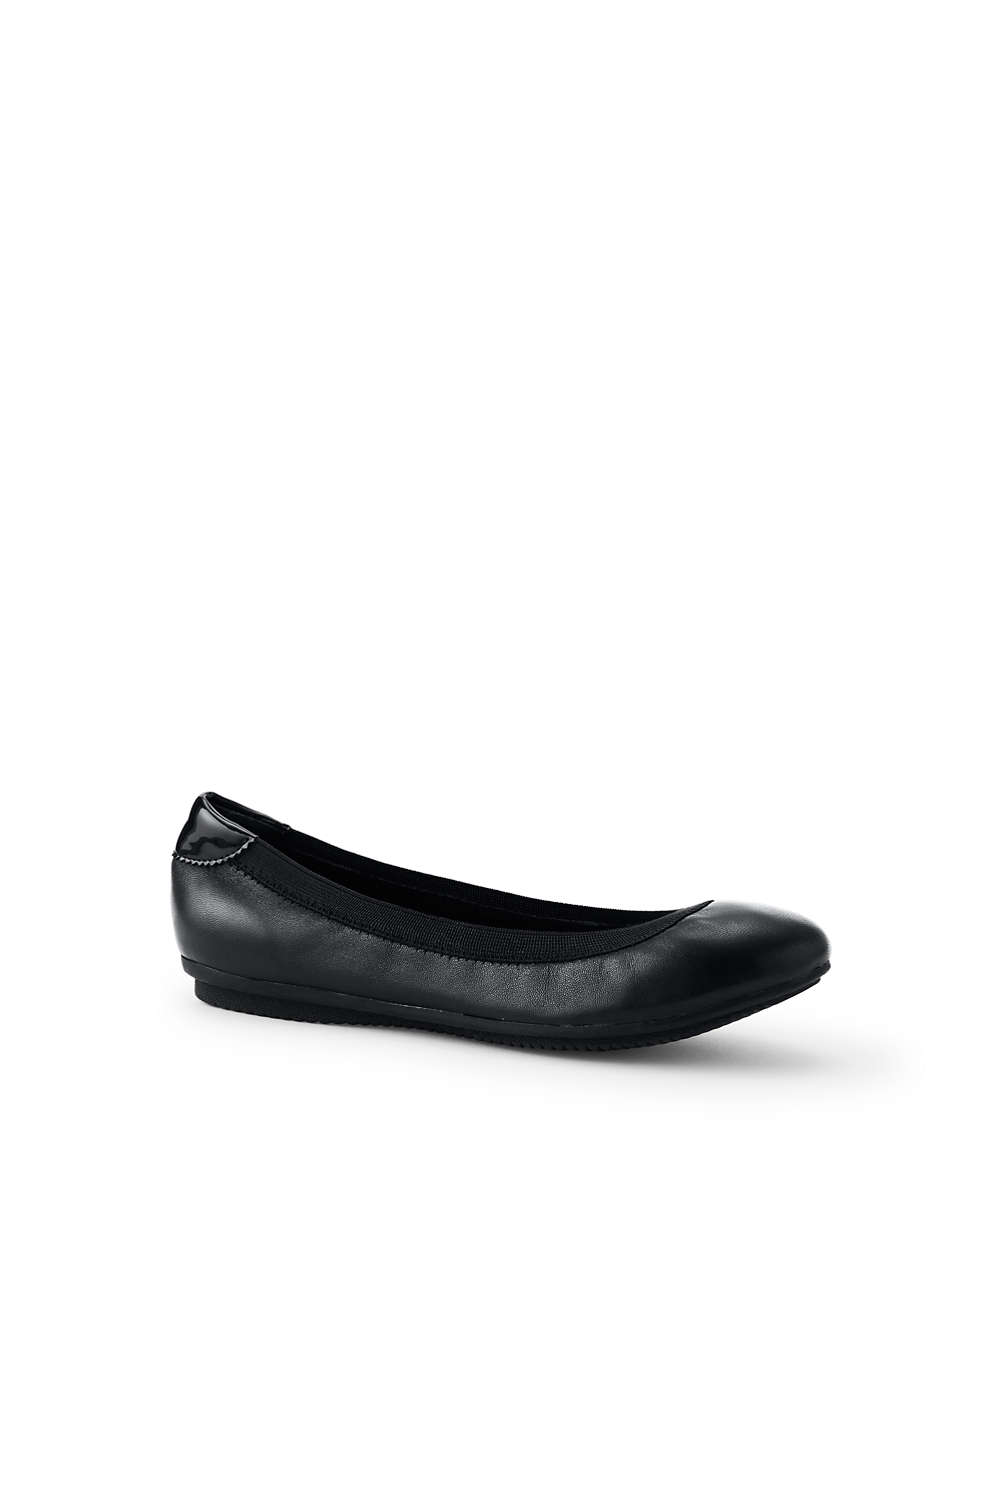 248db42ebd3a Womens Comfort Elastic Ballet Flats from Lands  End